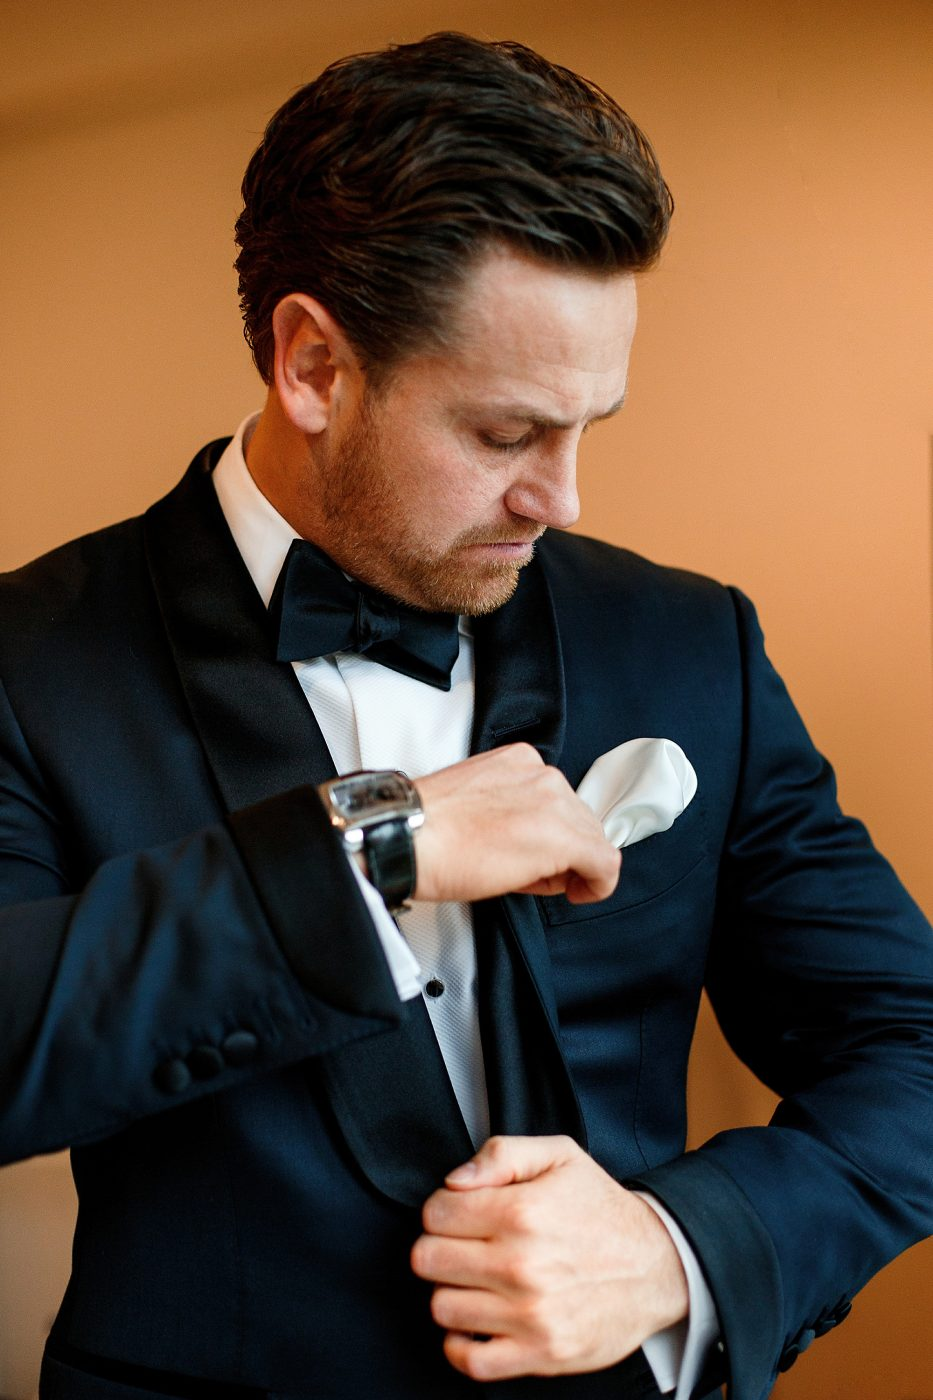 groom adjusting pocket square